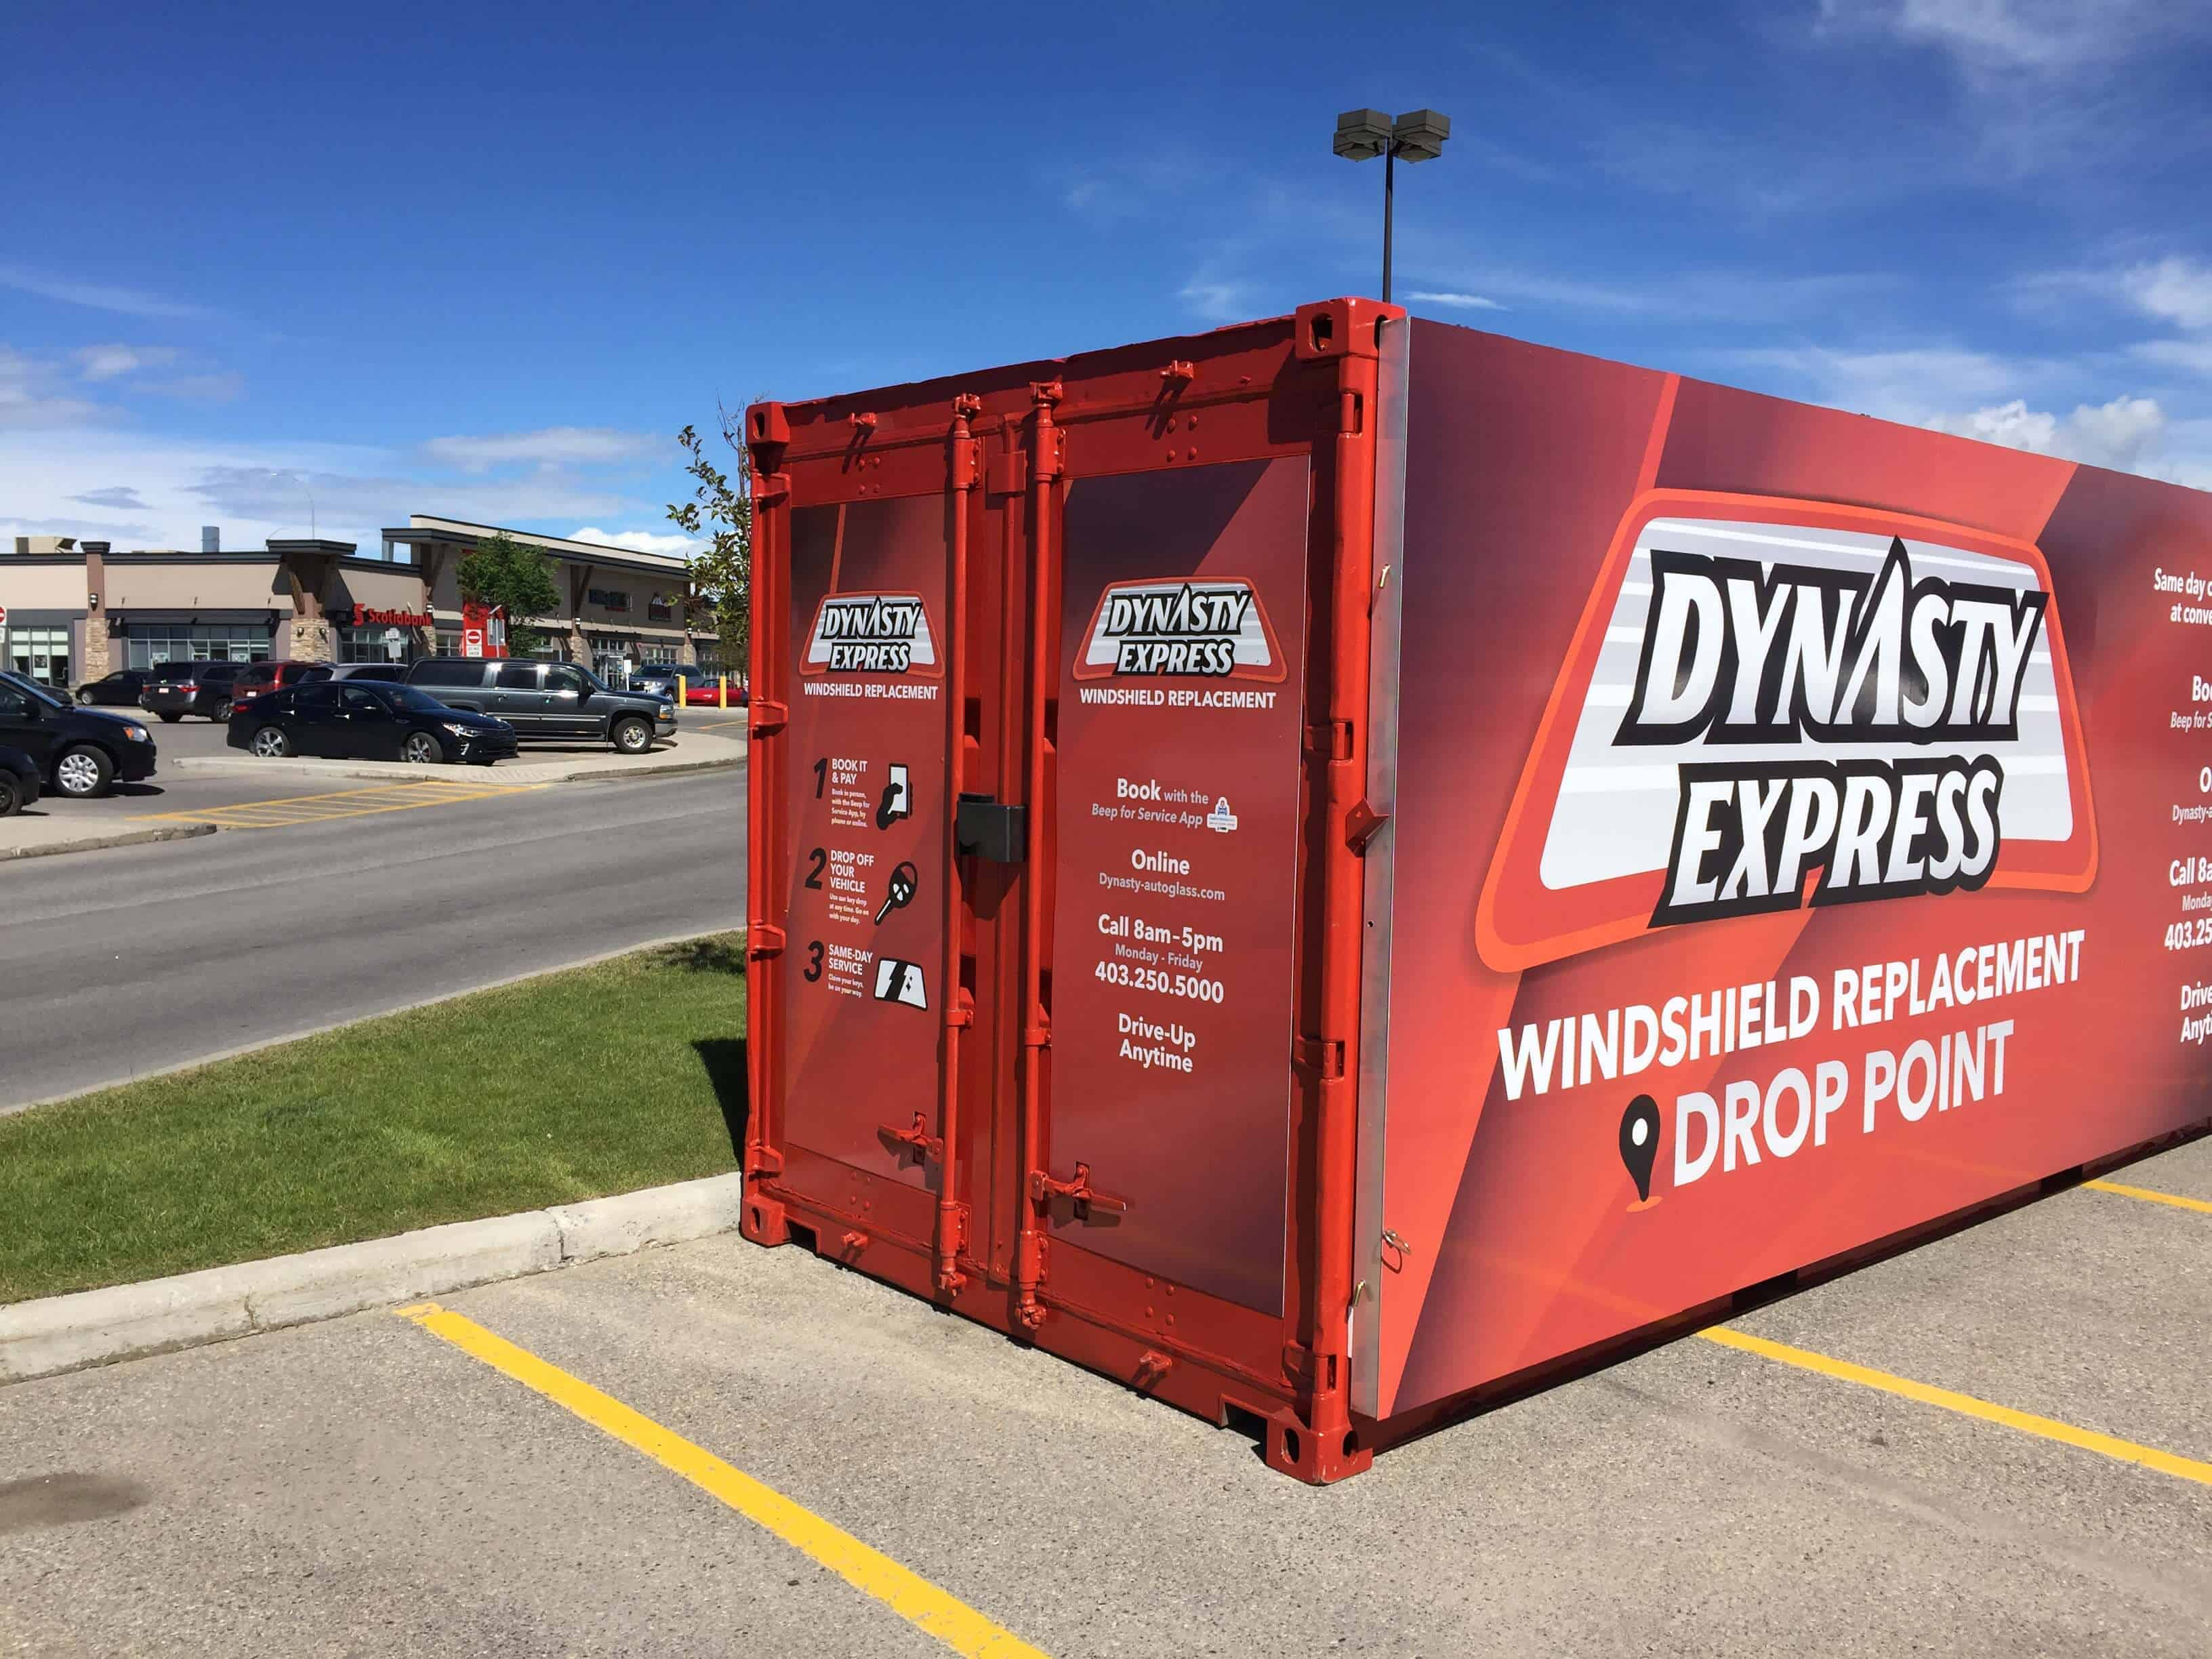 dynasty express satellite drop off point